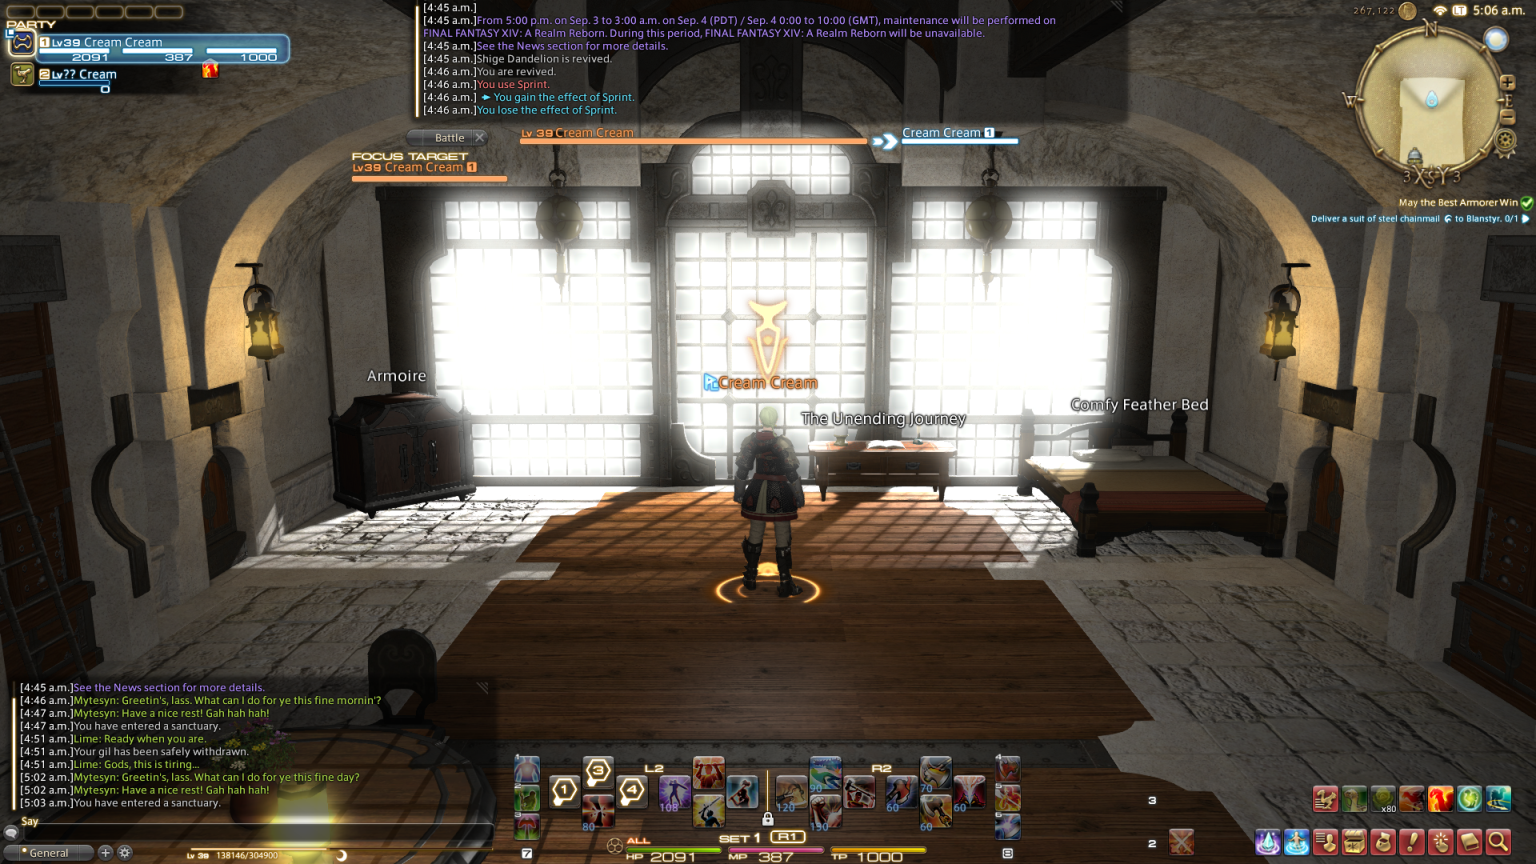 kais ffxiv make petbar command toggle your visibility pictures remember anyone post know